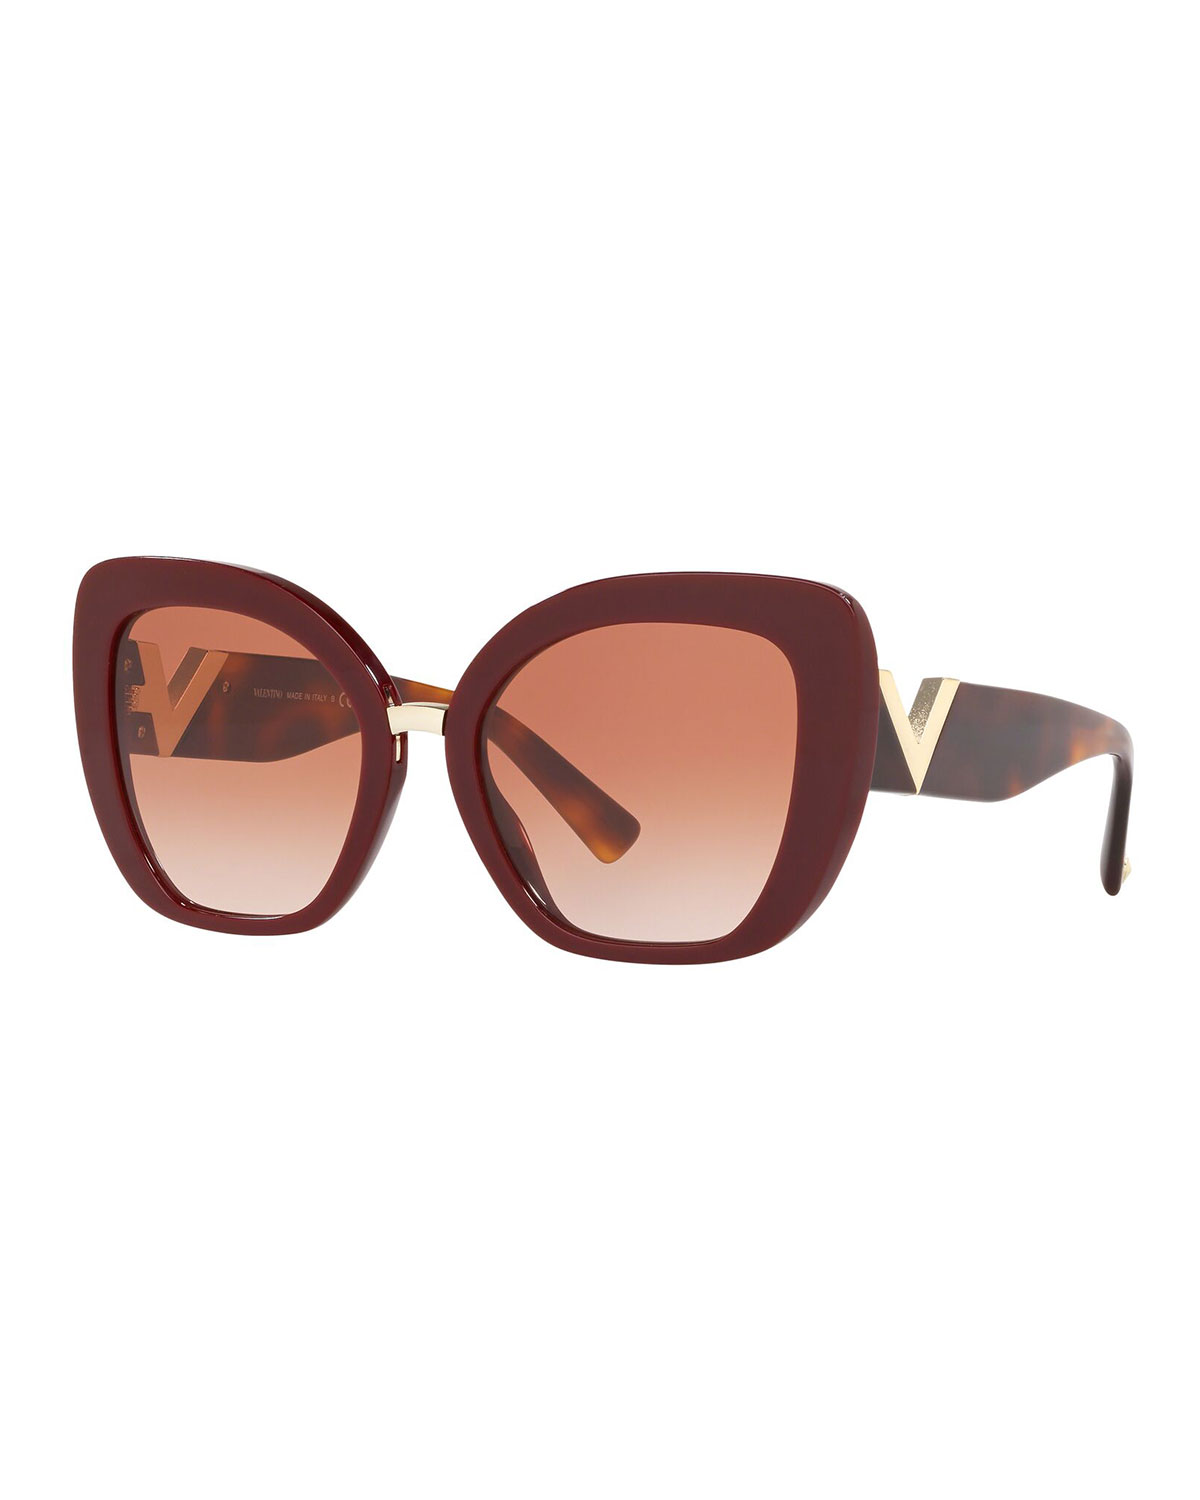 Valentino Sunglasses V-TEMPLE ACETATE BUTTERFLY SUNGLASSES